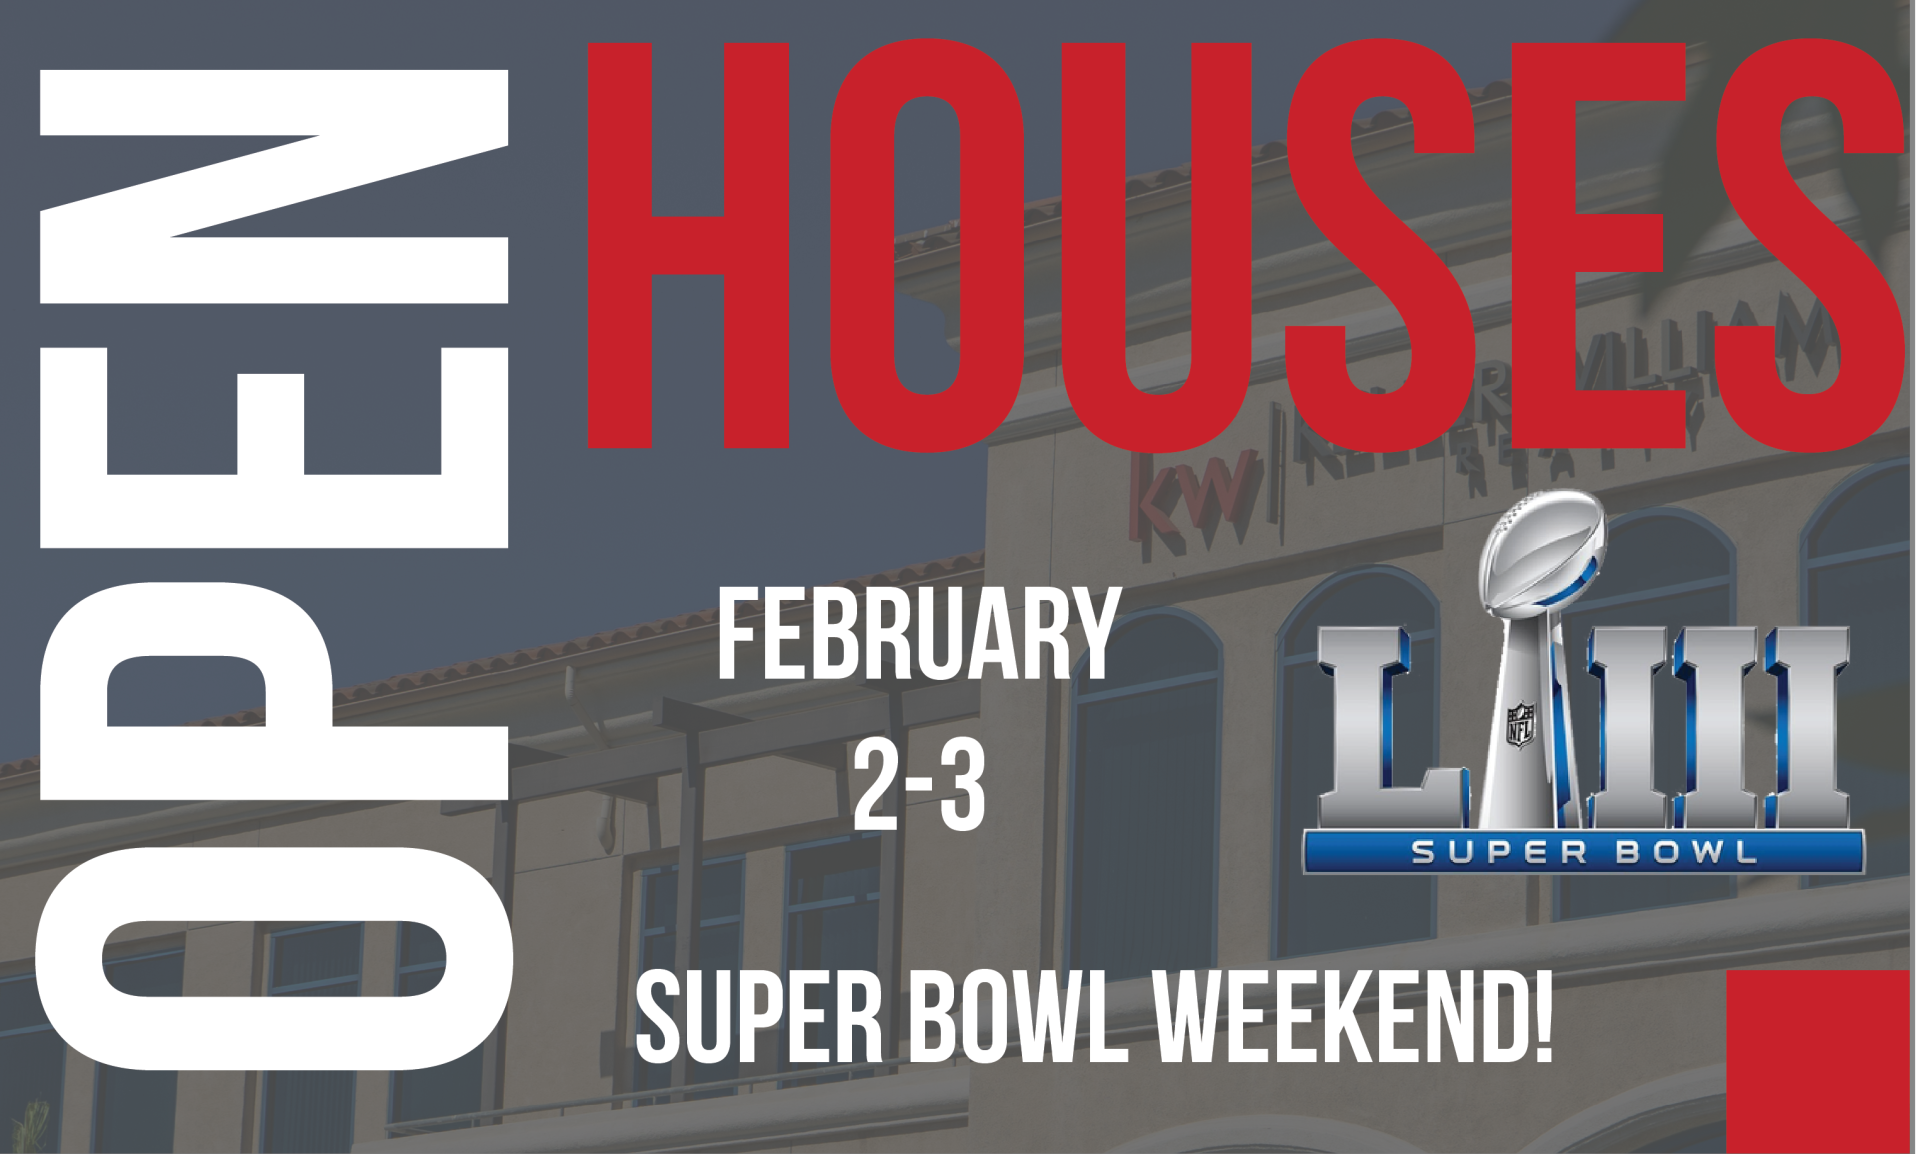 Super Bowl Weekend Home Houses!